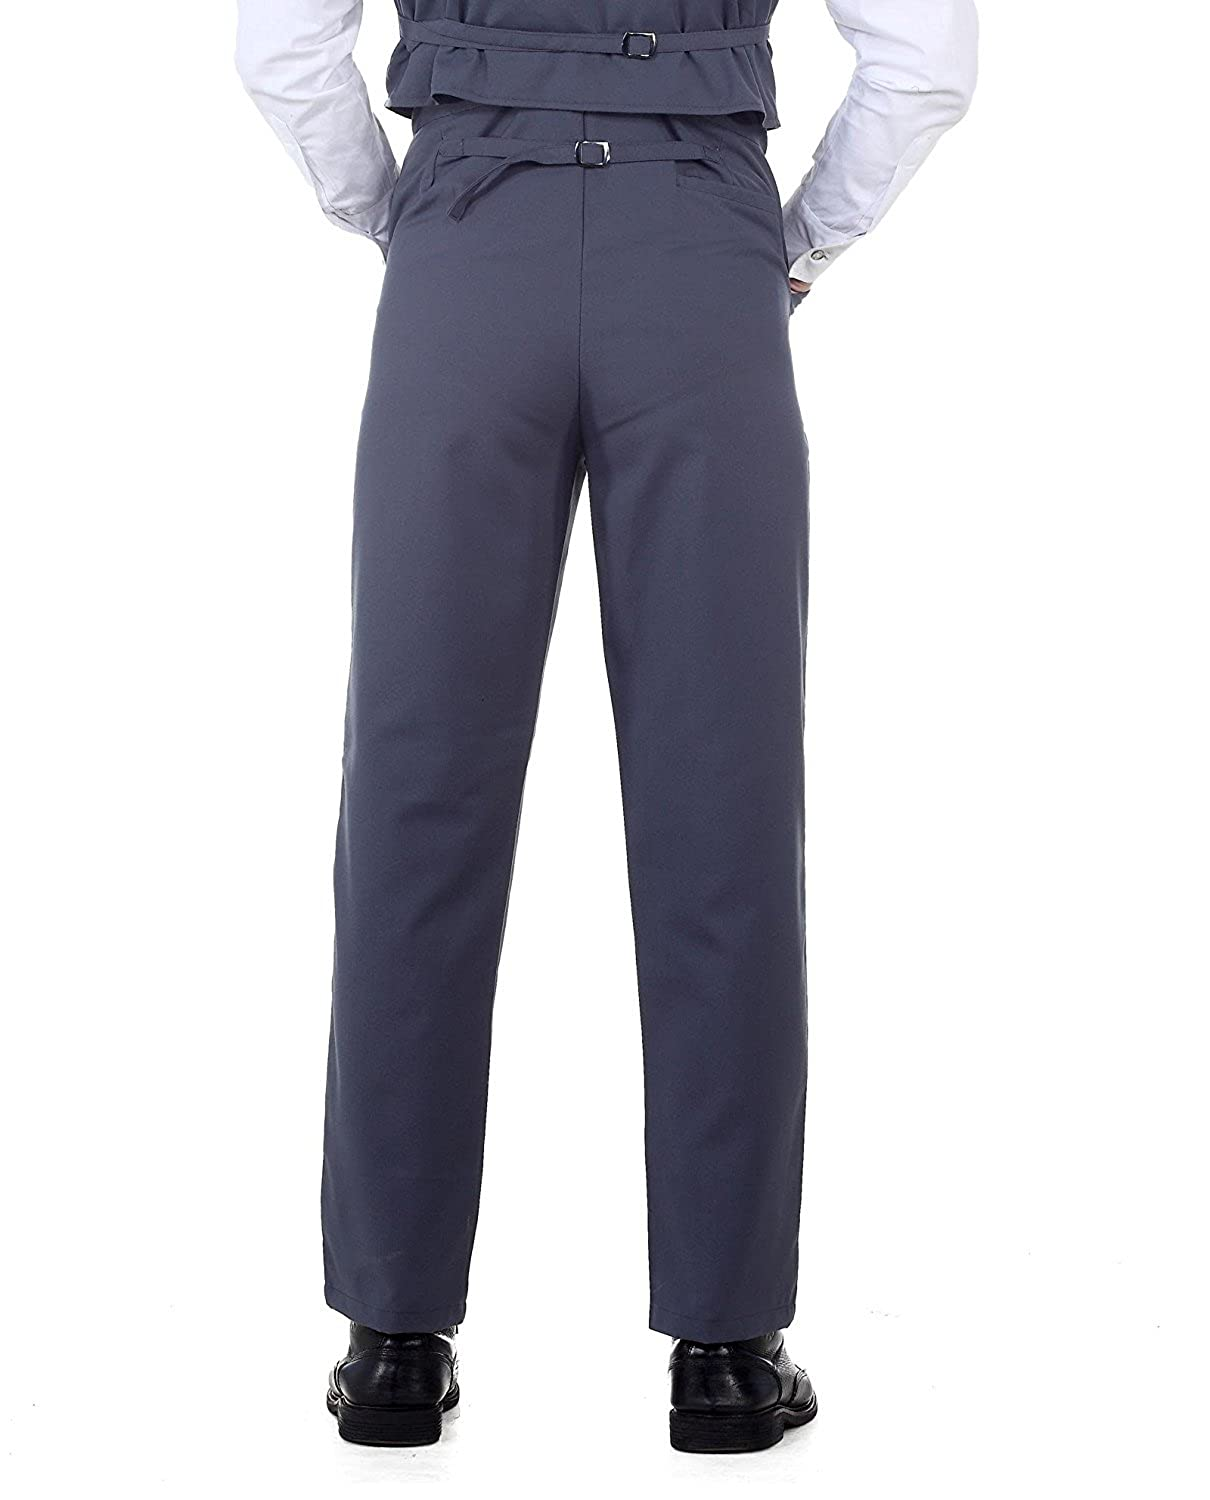 Men's Steampink Pants & Trousers Steampunk Victorian Costume Canvas Classic Pants Grey $37.95 AT vintagedancer.com